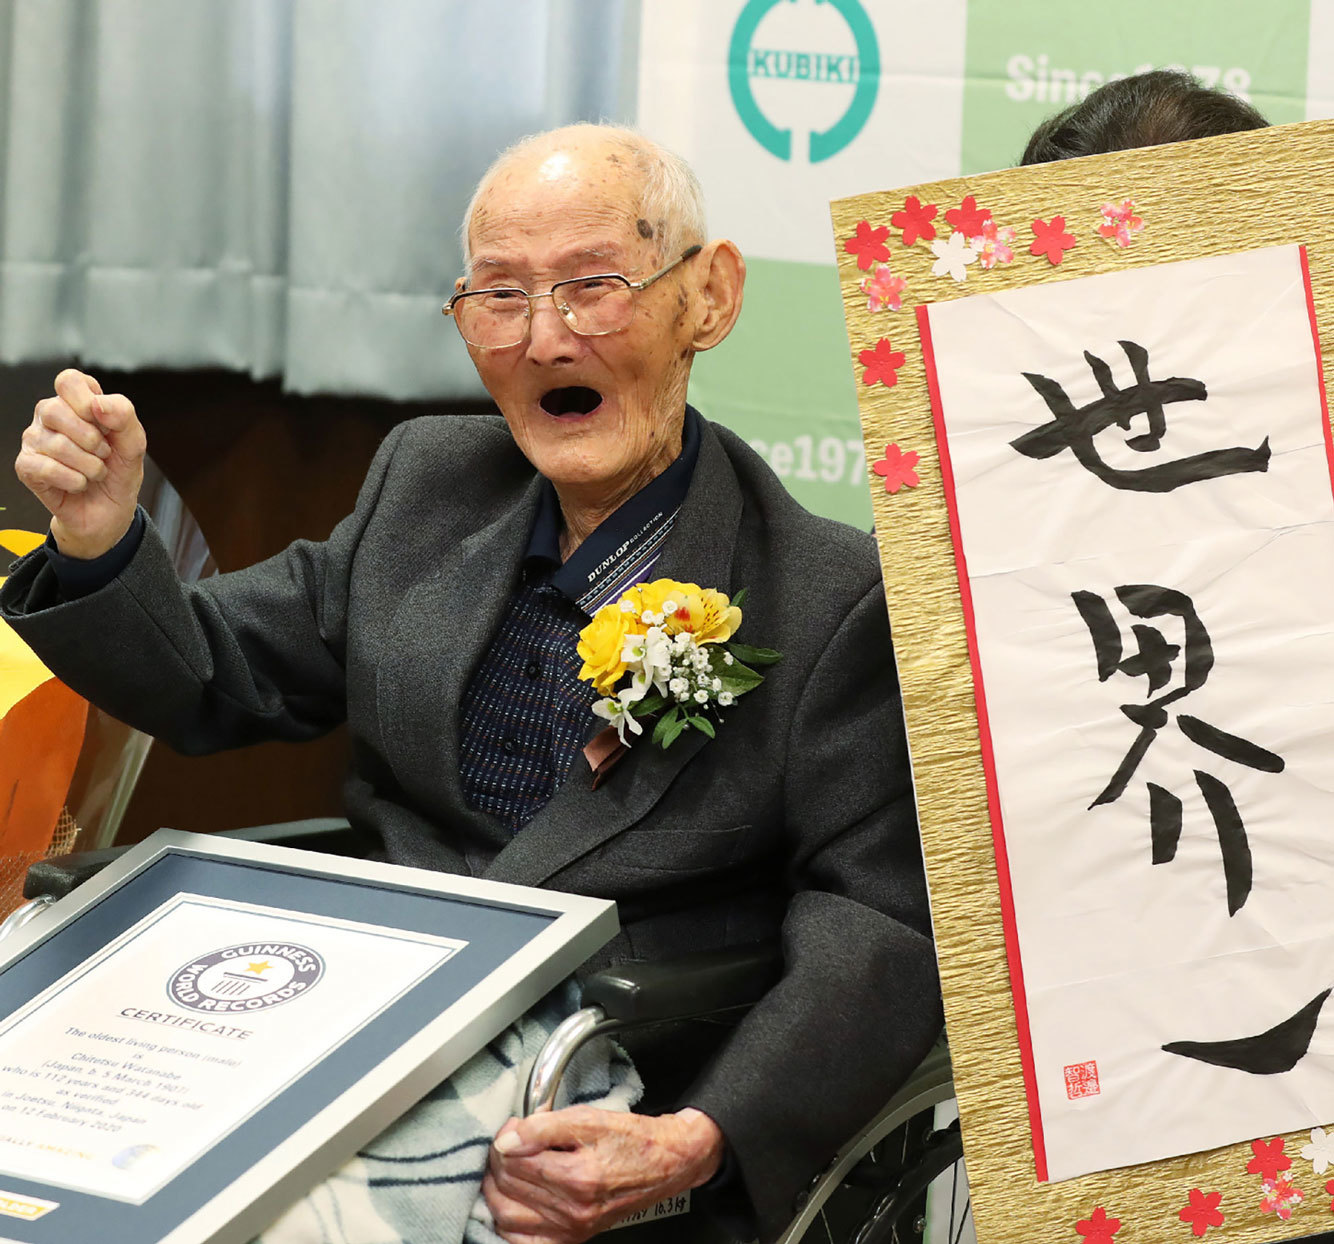 World's Oldest Man Claims Smiling Is His Secret to Longevity